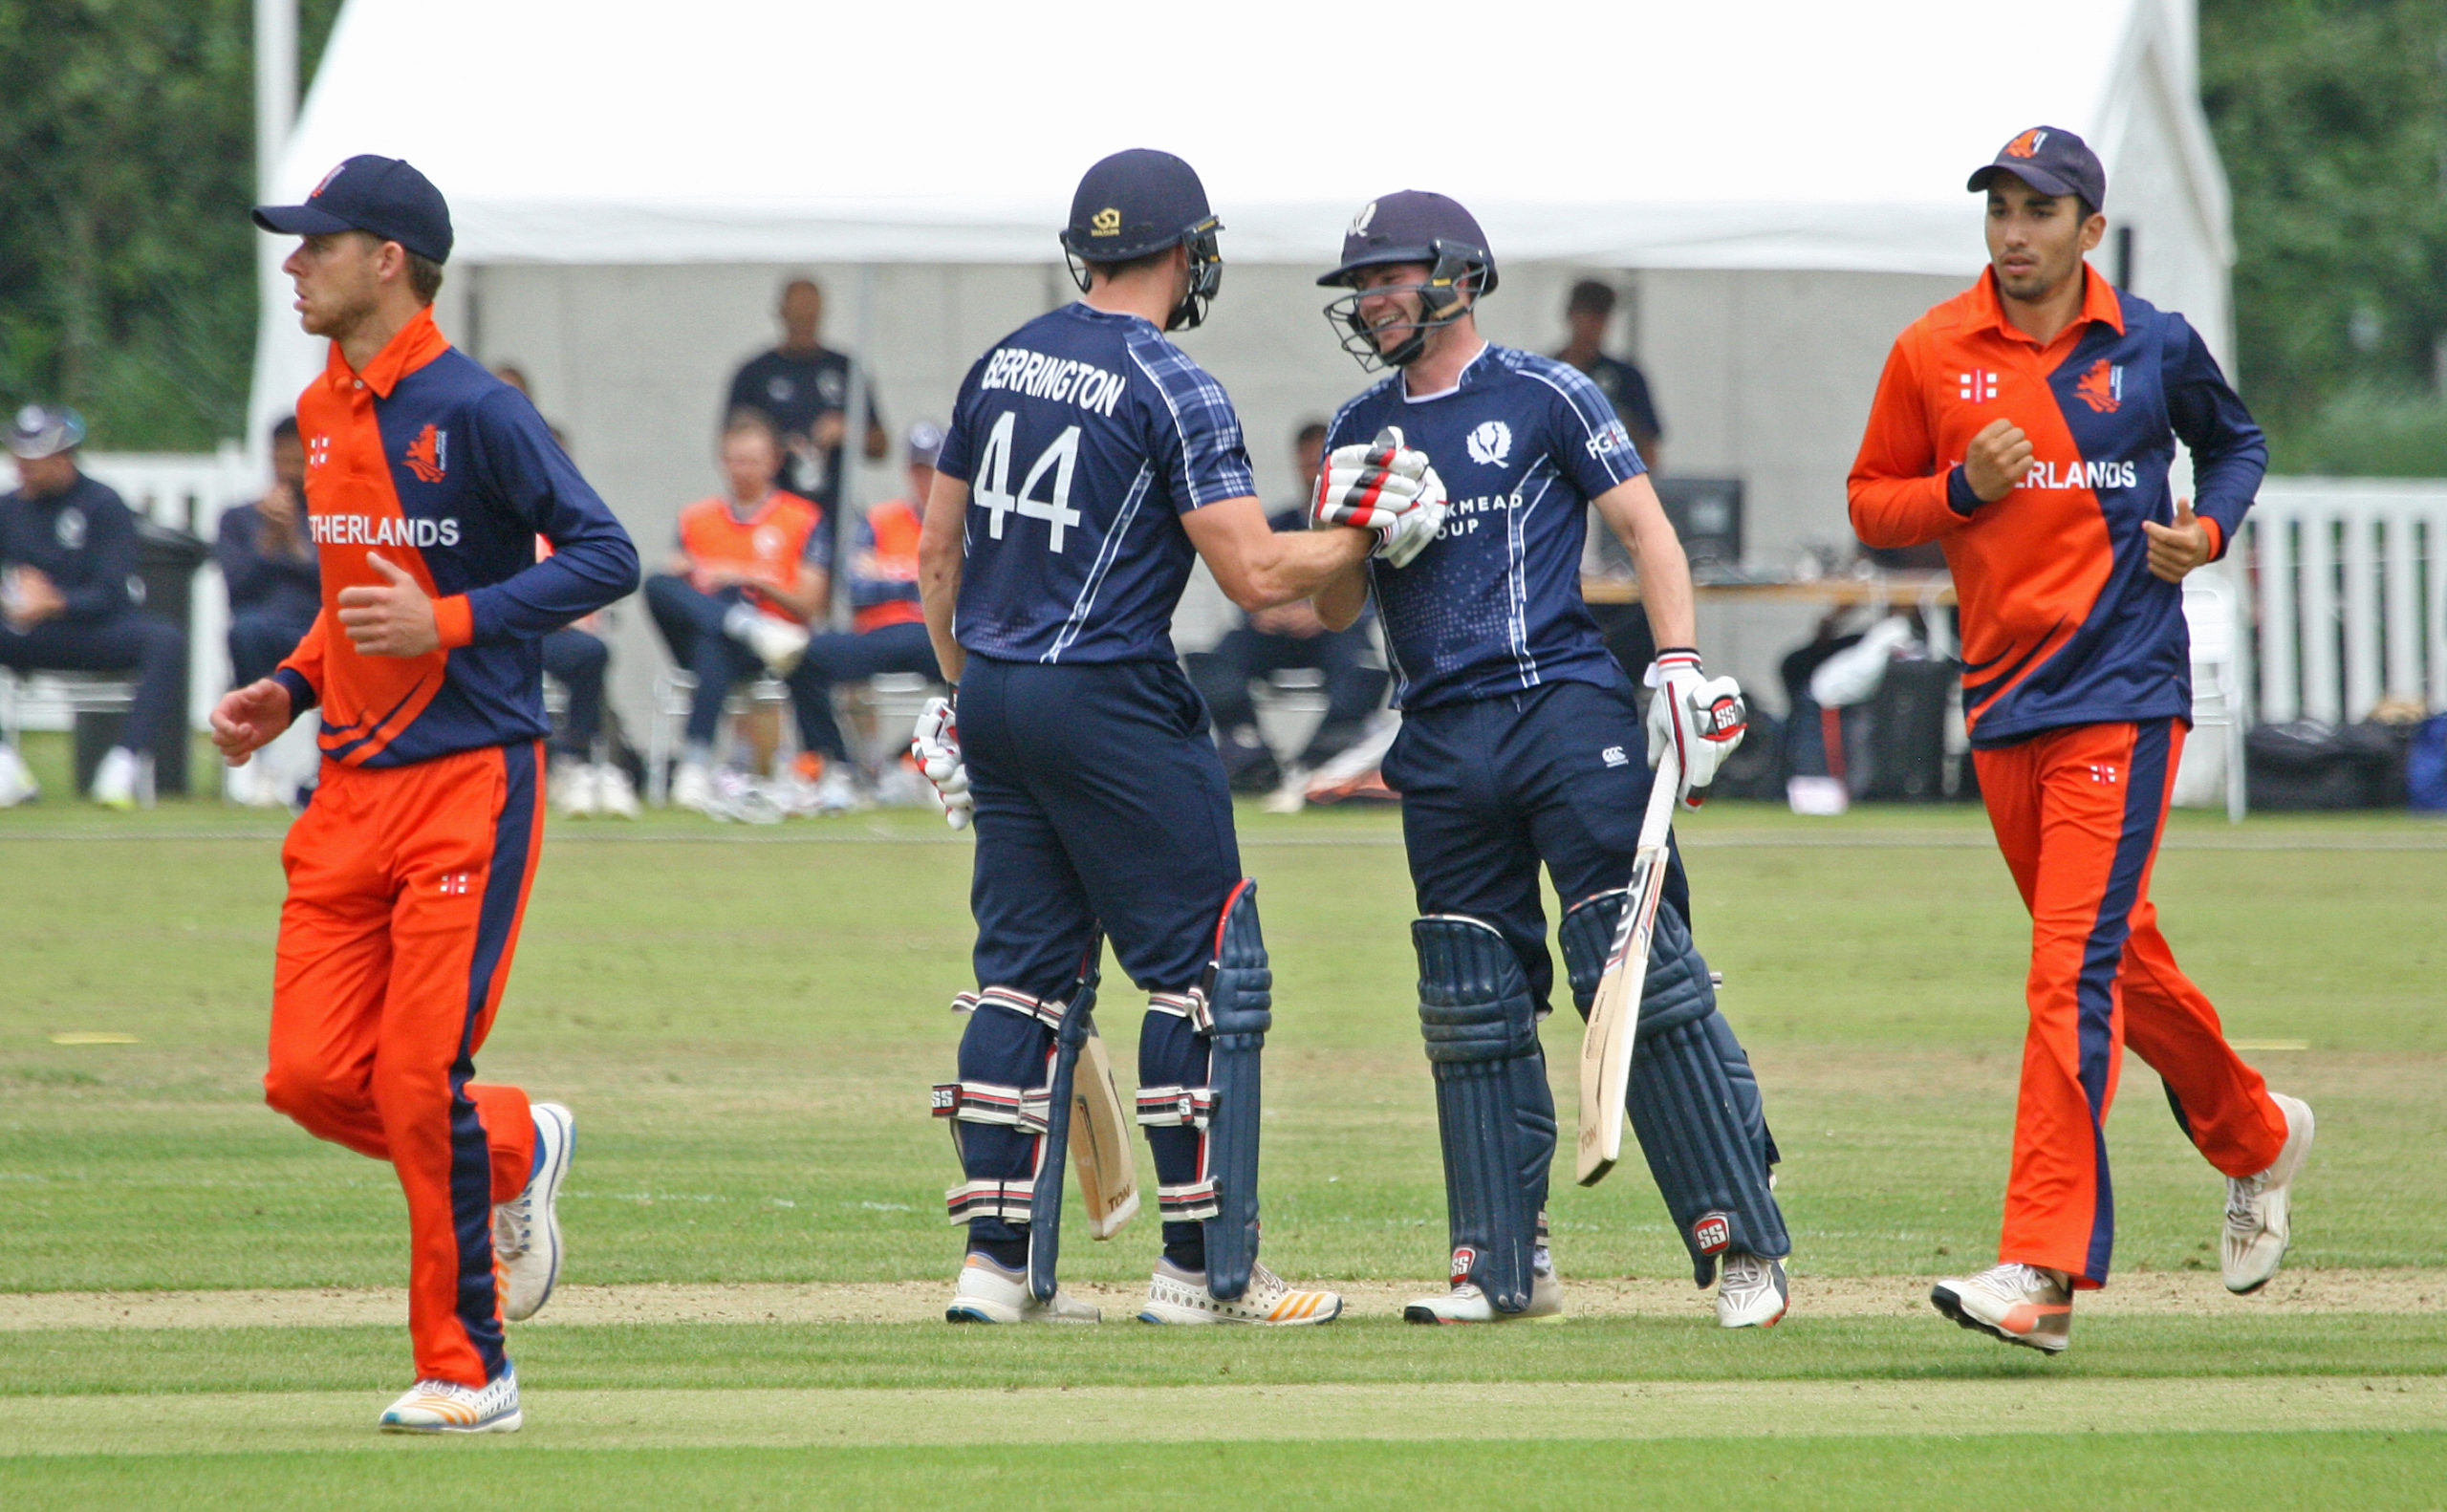 Cricket Scotland: 519-day wait for international cricket comes to an end as Scotland men face Netherlands